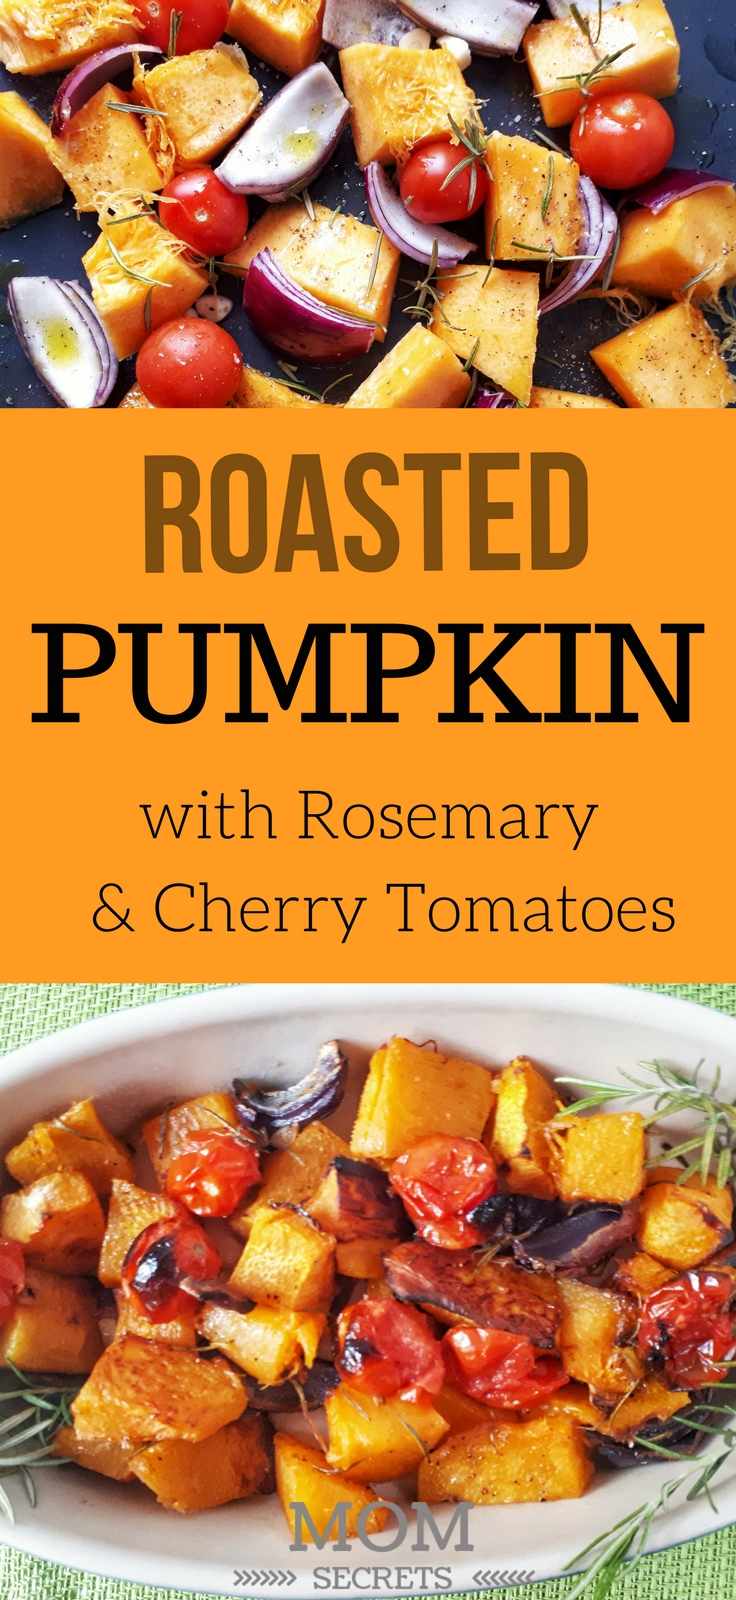 Roasted pumpkin is a simple, easy and versatile recipe that makes an amazing side dish. This dish has a wonderful balance of pumpkin flavor with the rosemaryand cherry tomatoes. This can be a paleo, keto and vegan recipe.